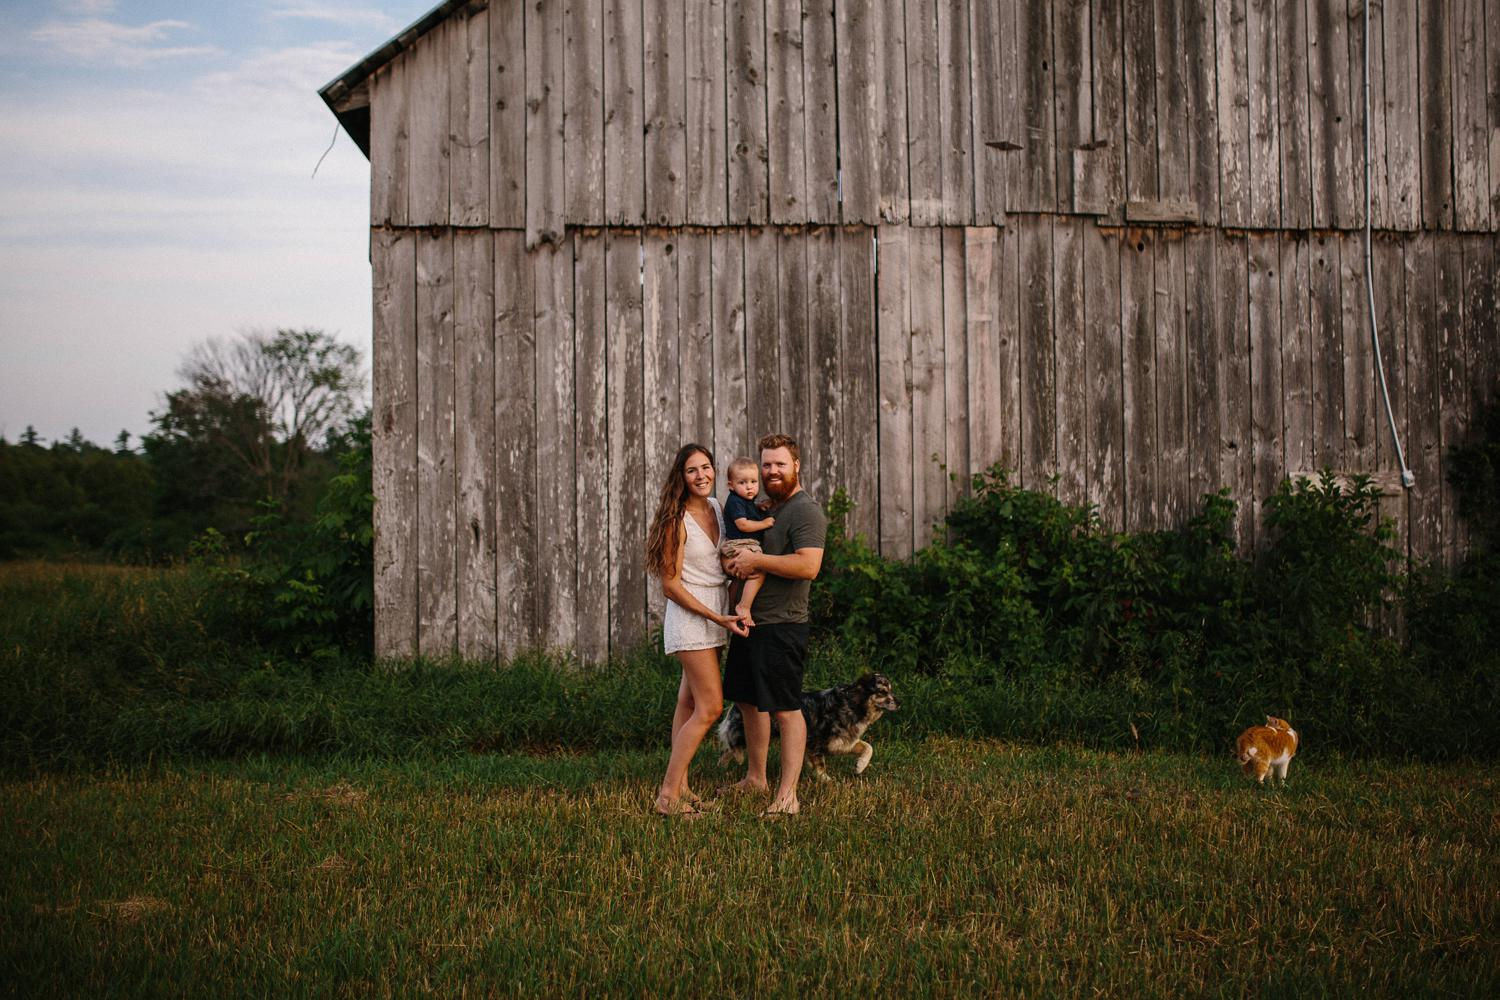 lanark highlands farm family photo session - kerry ford photography-036.jpg